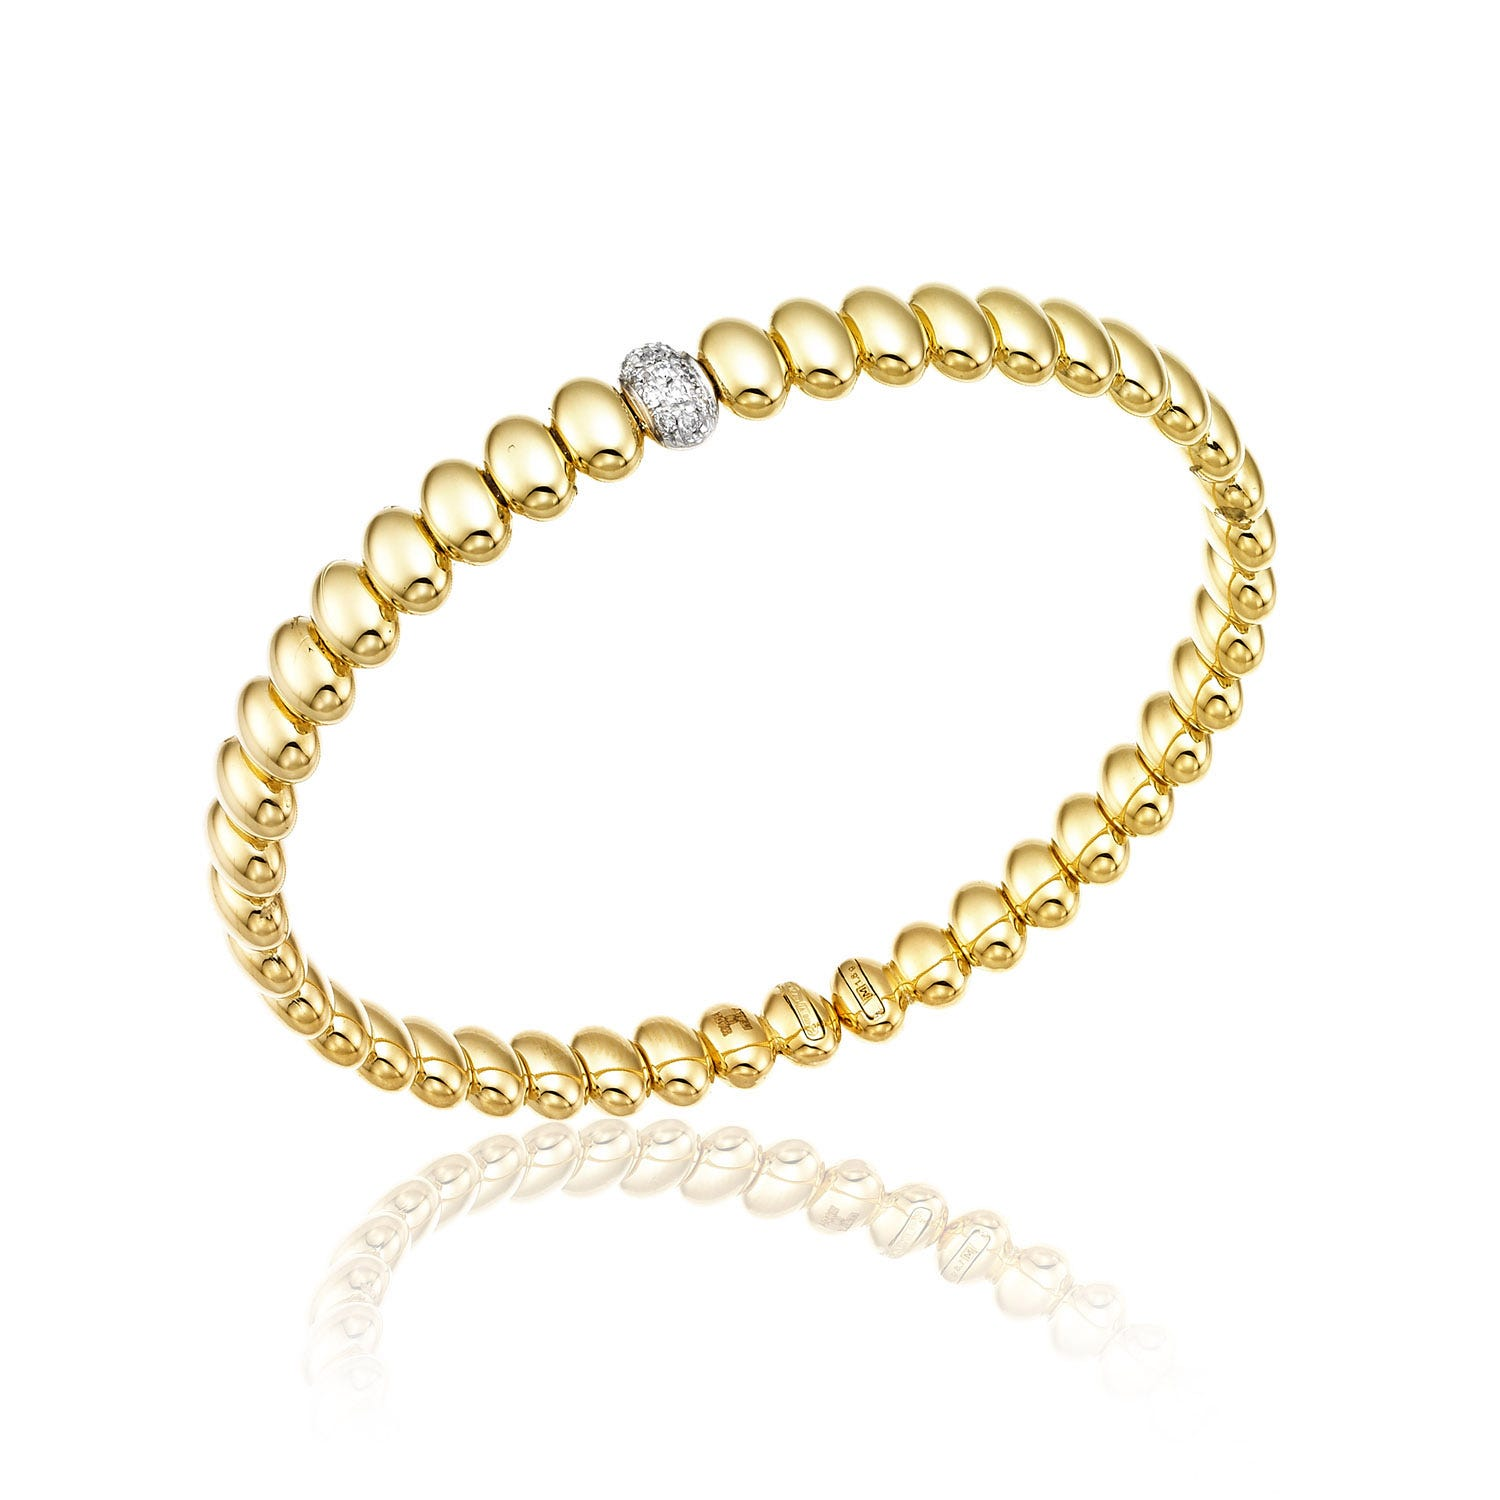 Chimento 18ct Yellow Gold and Diamond Armillas Collection Acqua Bangle Bracelet